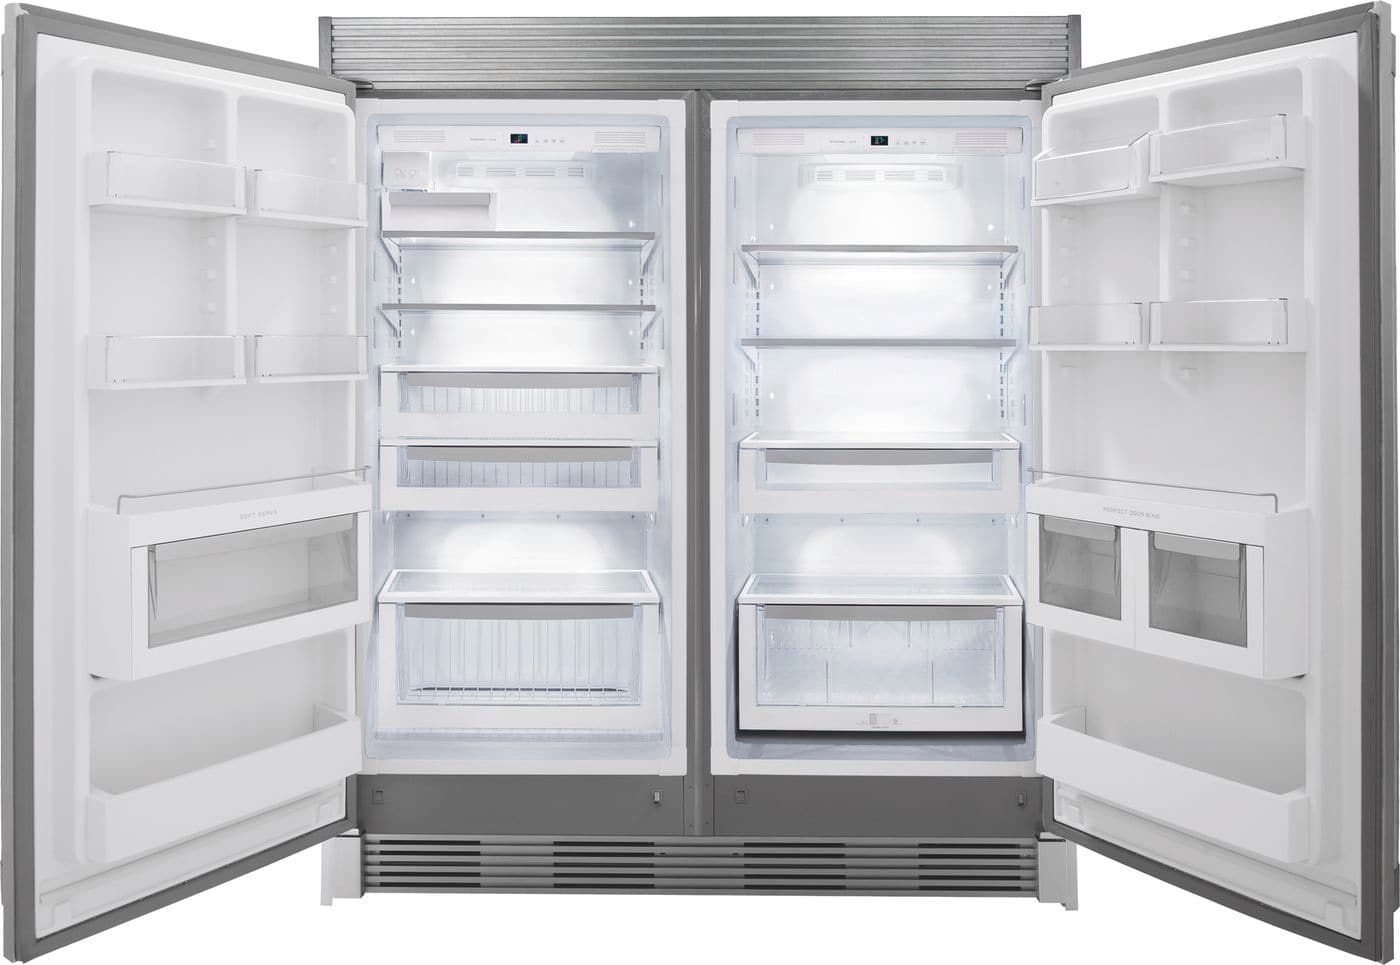 "Electrolux ICON Electrolux ICON® 32"" Built-In All Refrigerator"